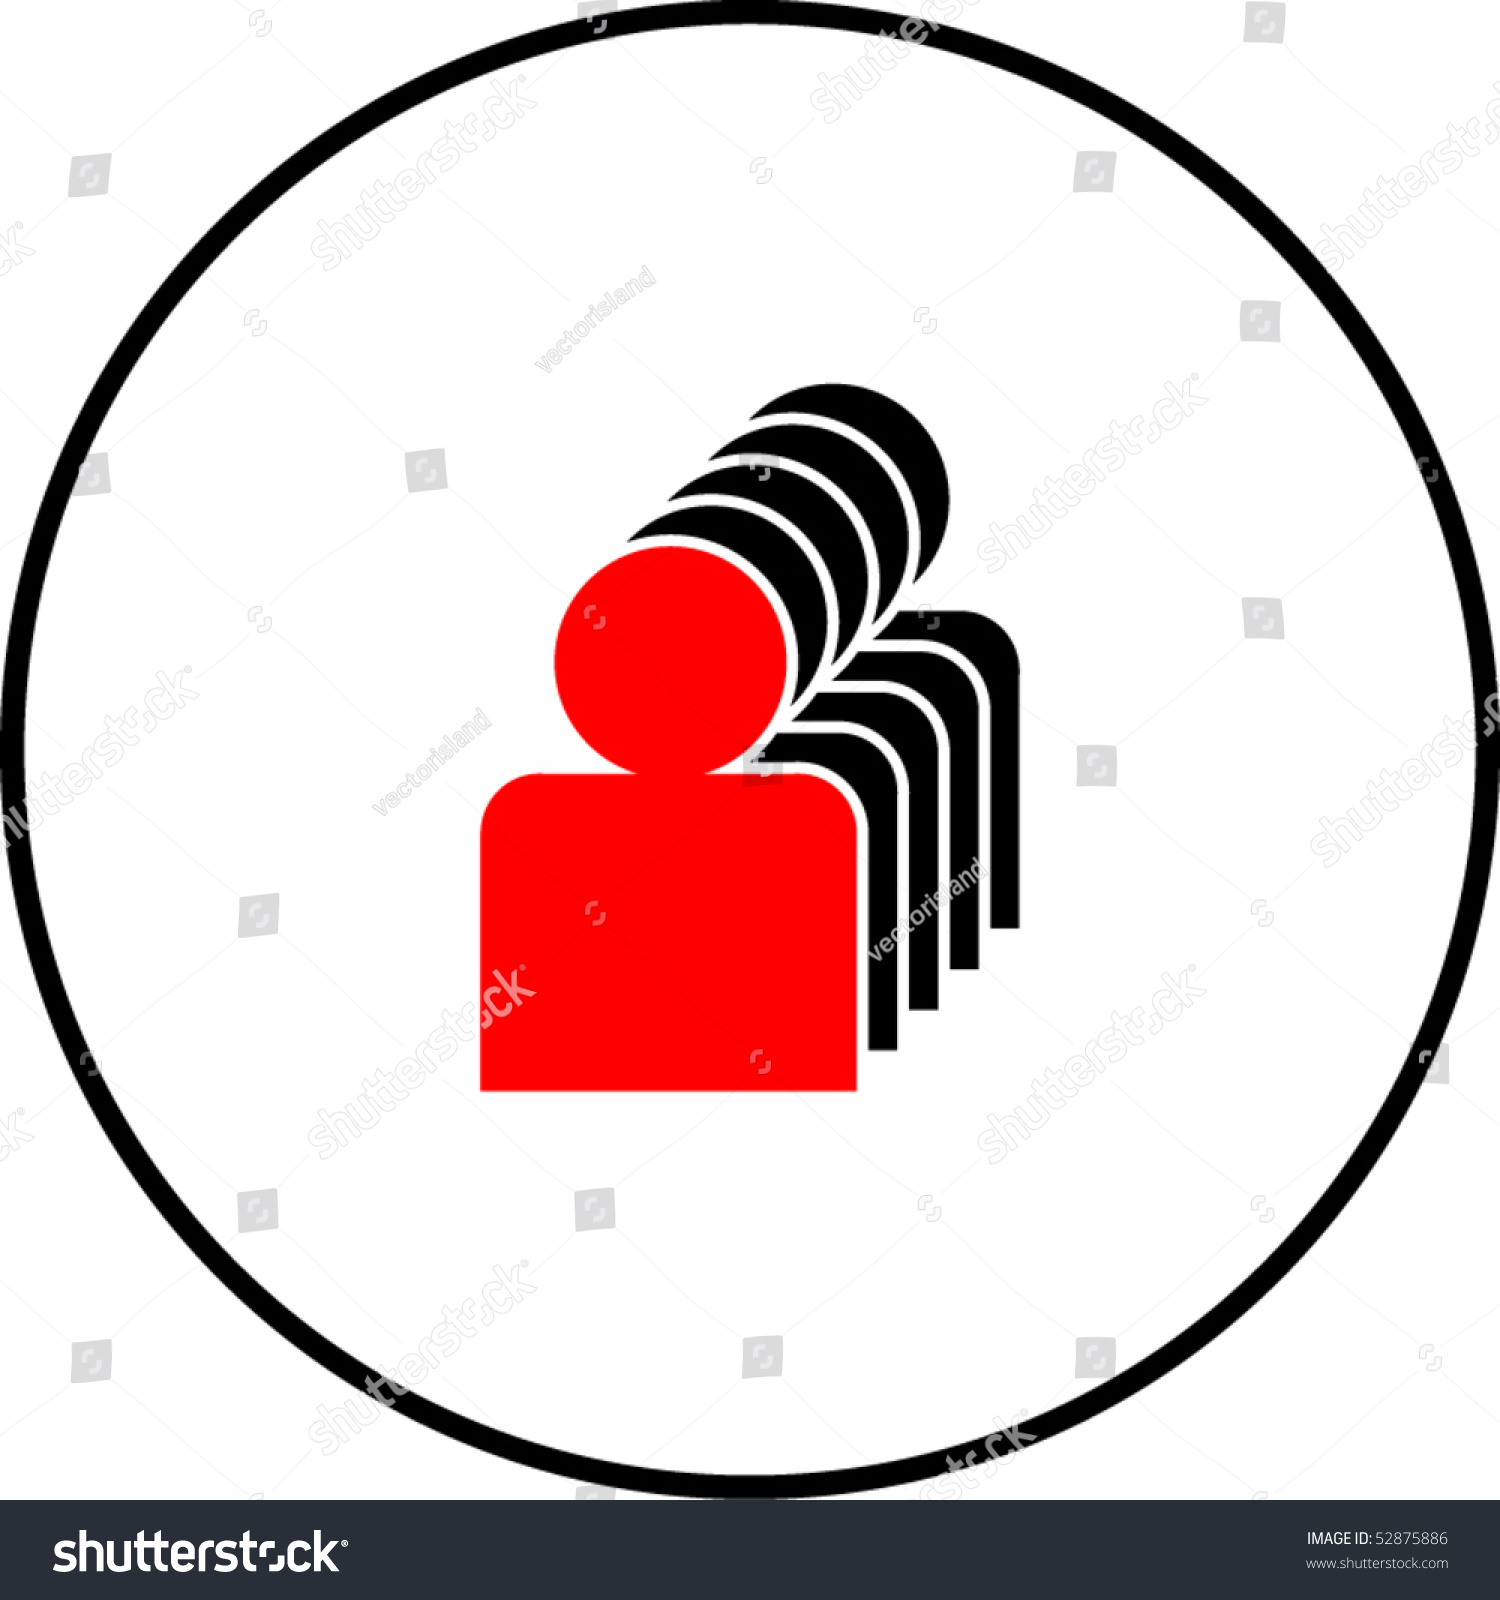 first line leader symbol stock vector 52875886 shutterstock first in line or leader symbol